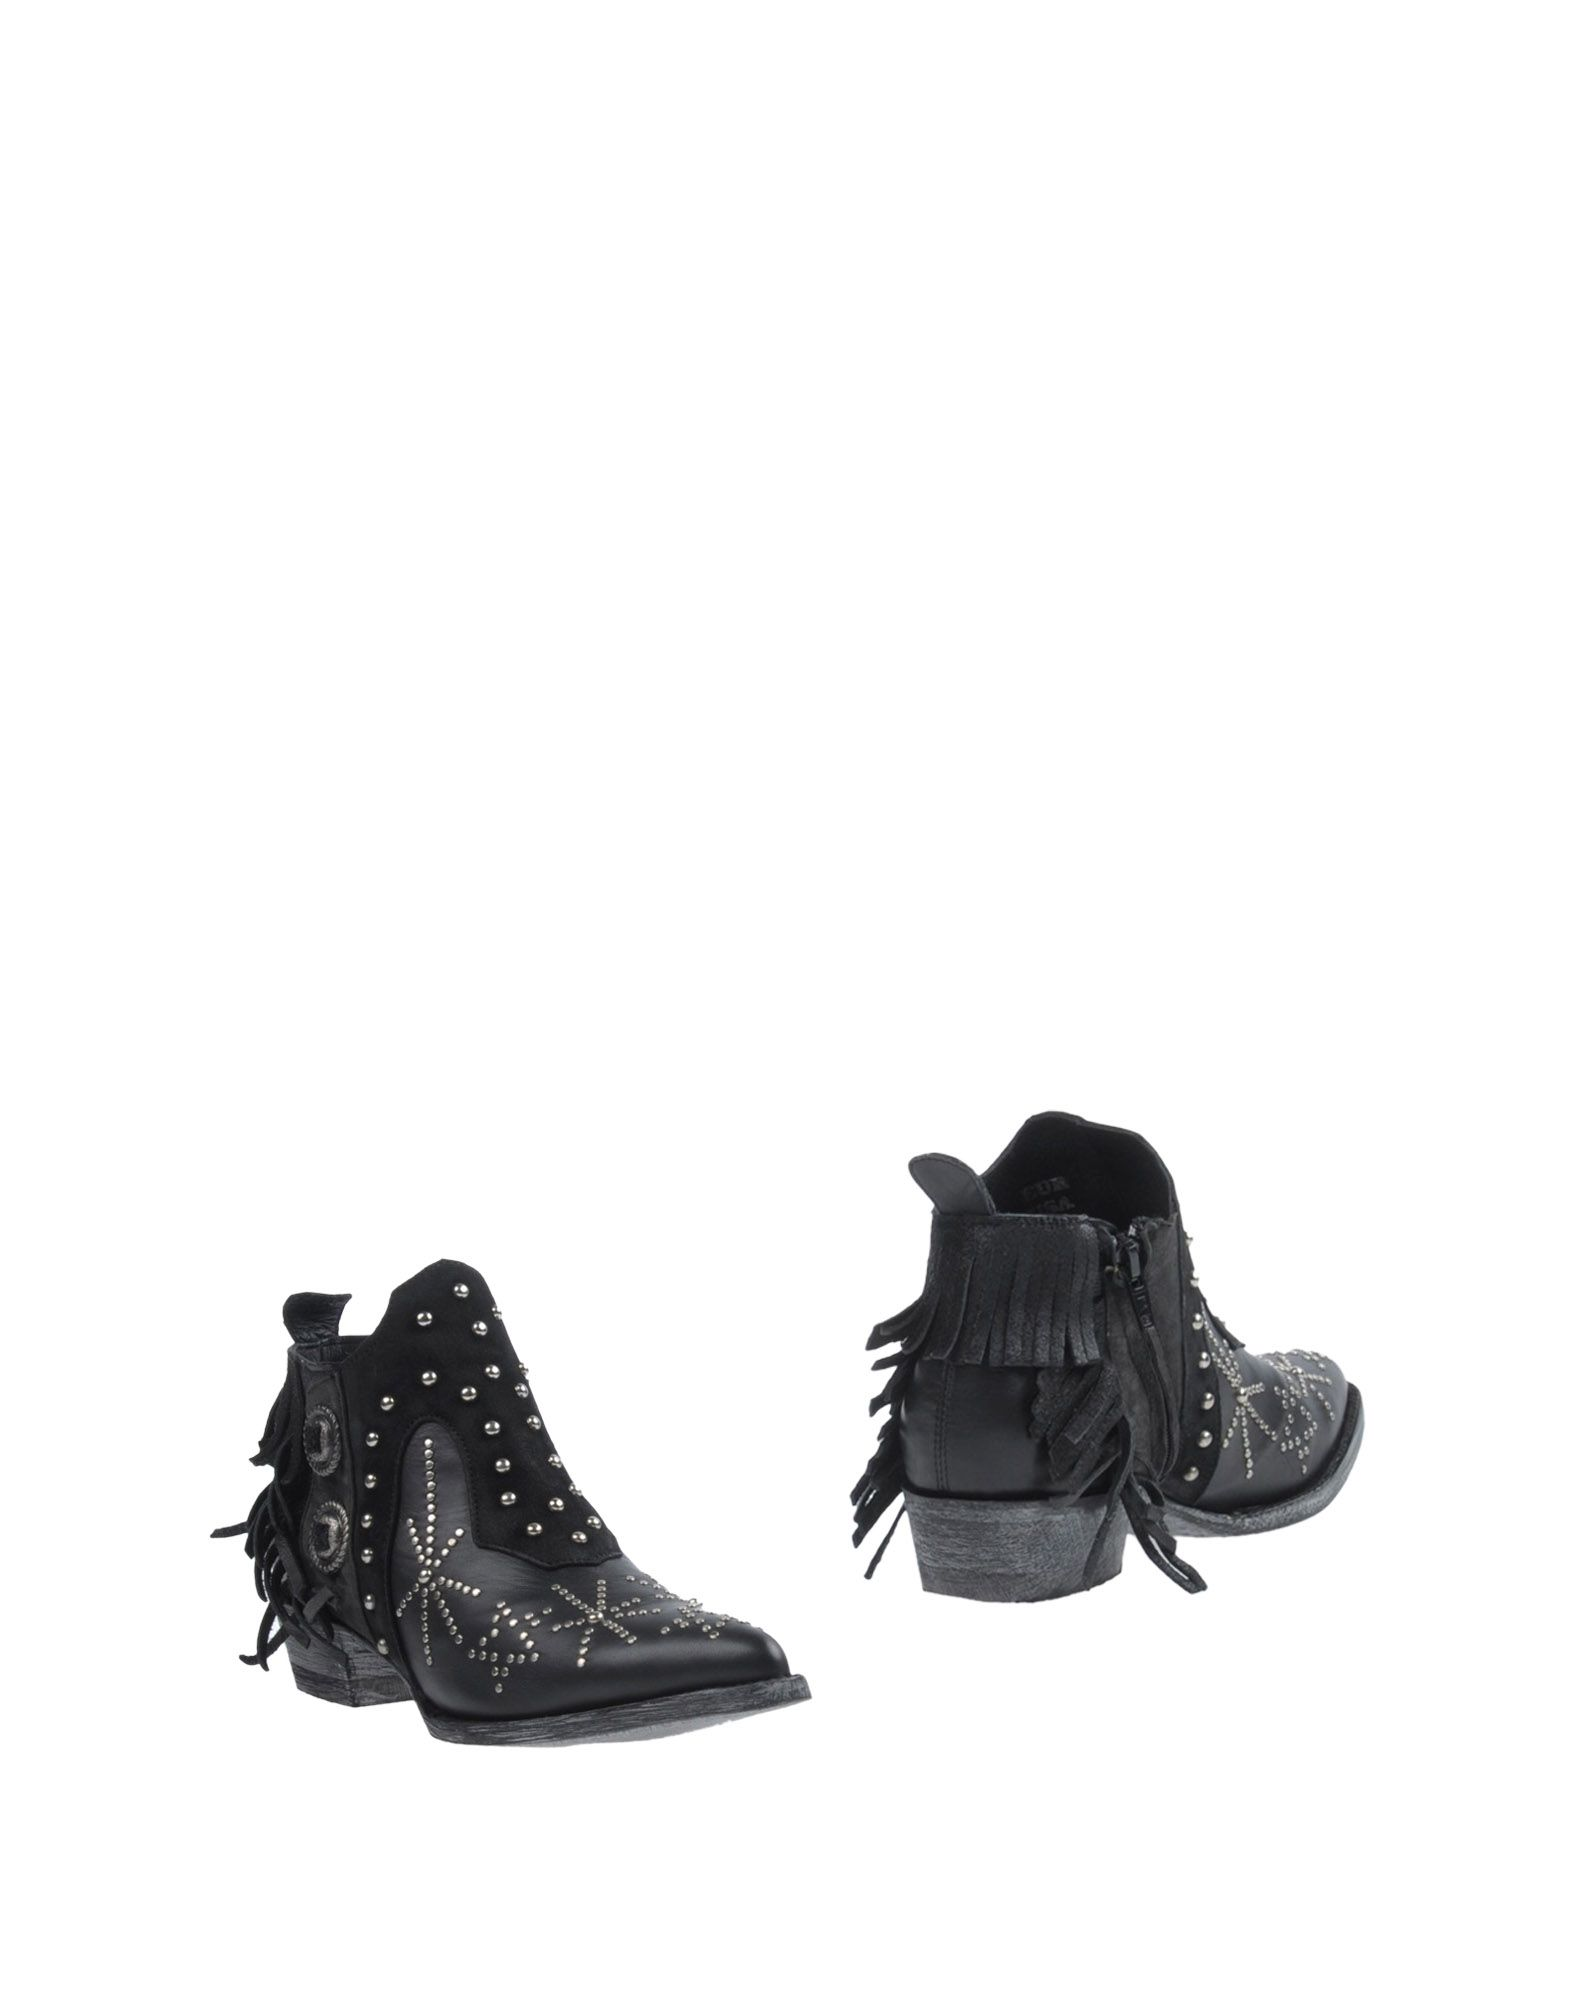 Mexicana Ankle Ankle Boot - Women Mexicana Ankle Ankle Boots online on  Canada - 11382562OM b836af